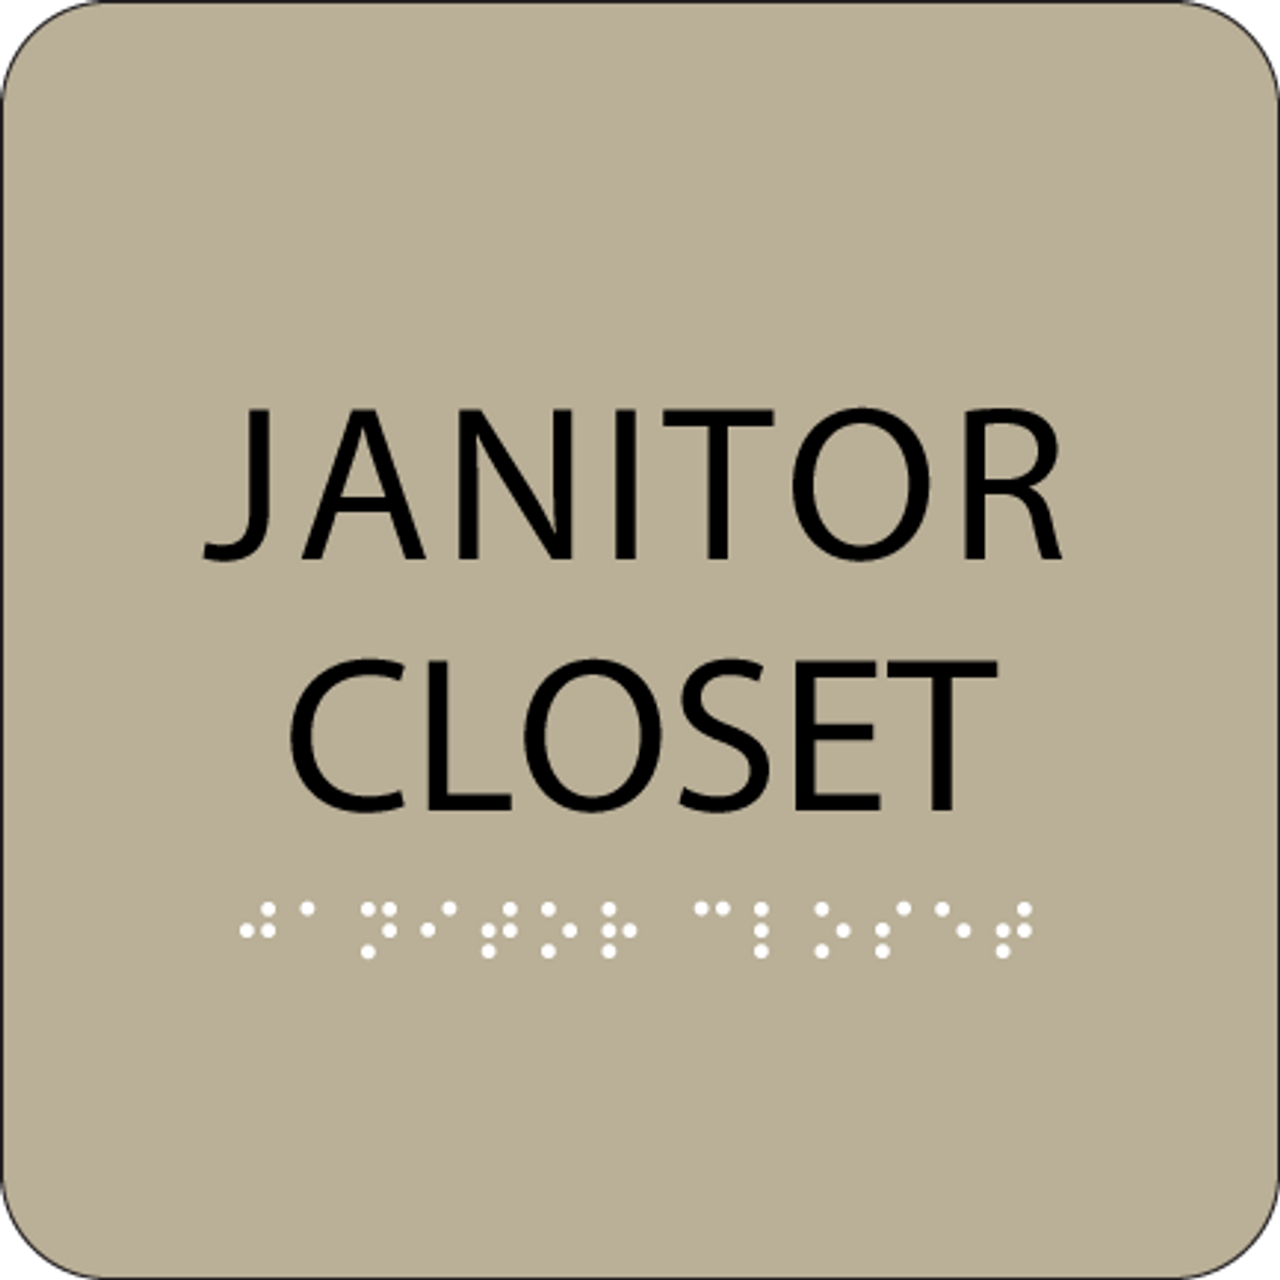 Brown Janitor Closet Braille Sign